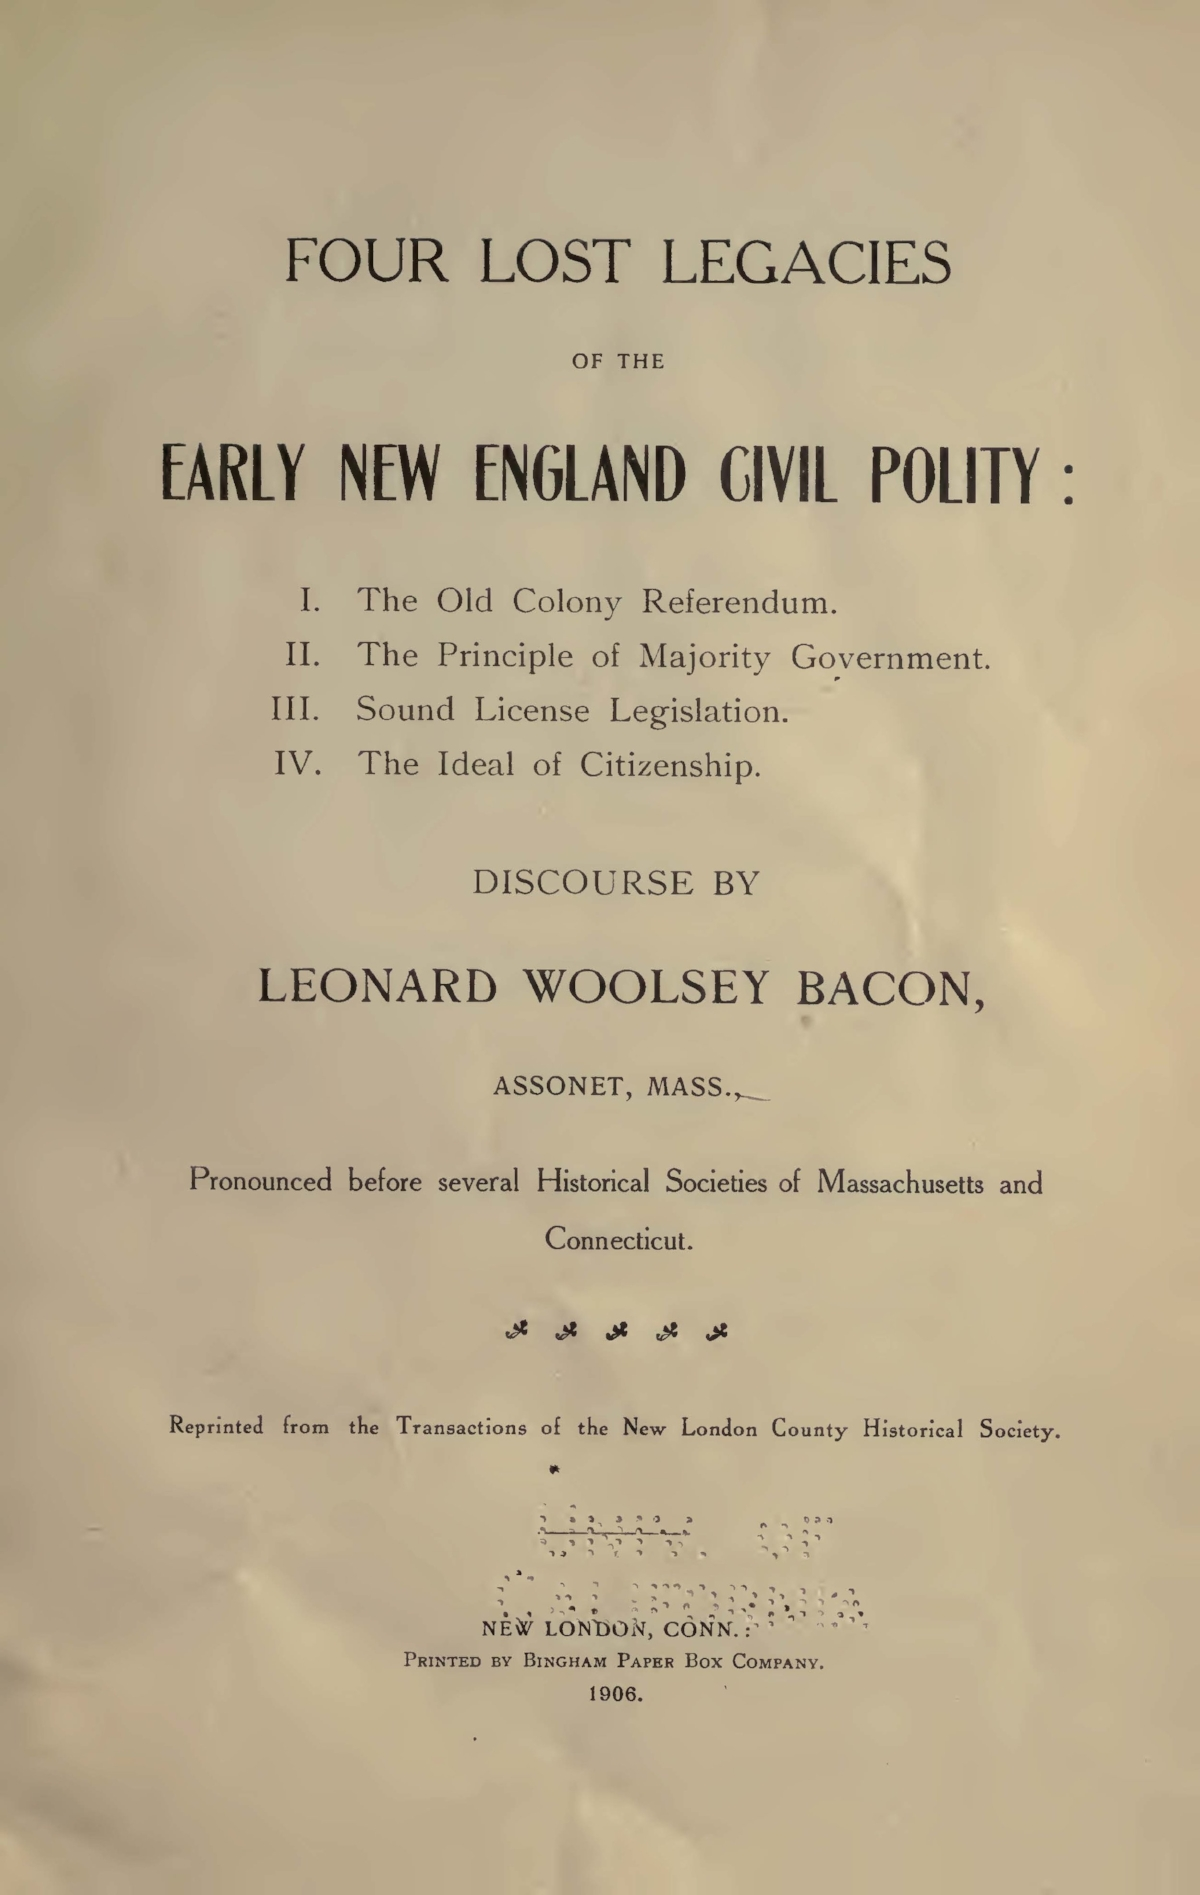 Bacon, Leonard Woolsey, Four Lost Legacies of the Early New England Civil Polity Title Page.jpg